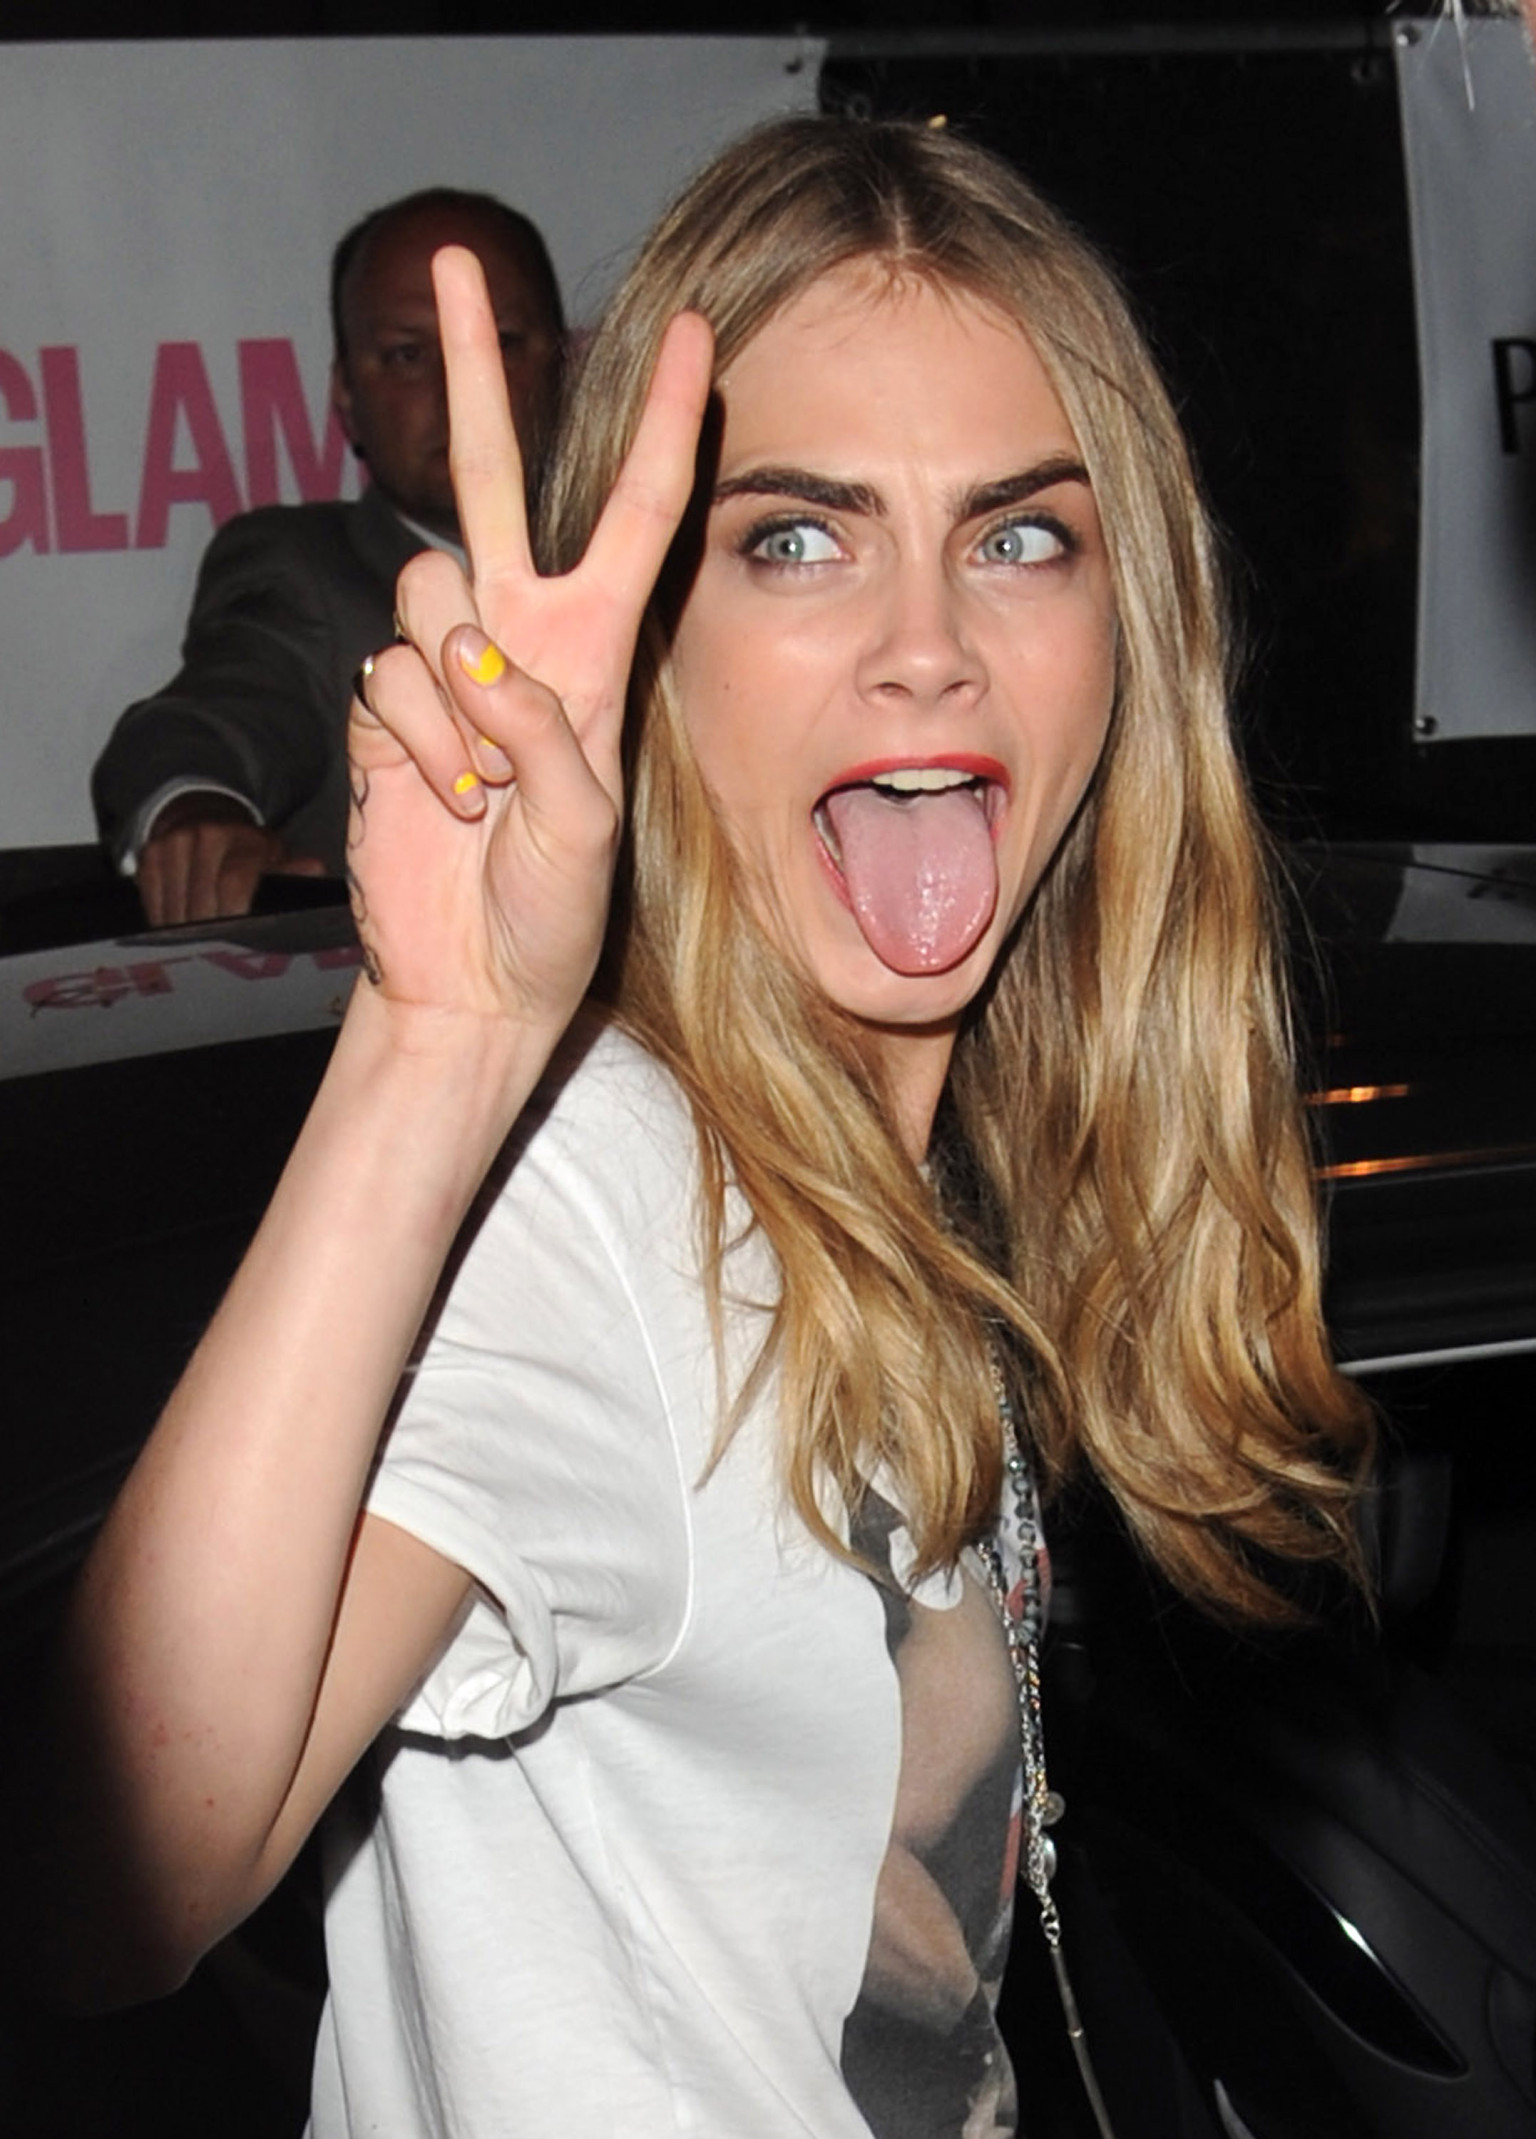 Cara Delevingne U0026 39 S Movie  What Will This Rumored Project Look Like   Photos